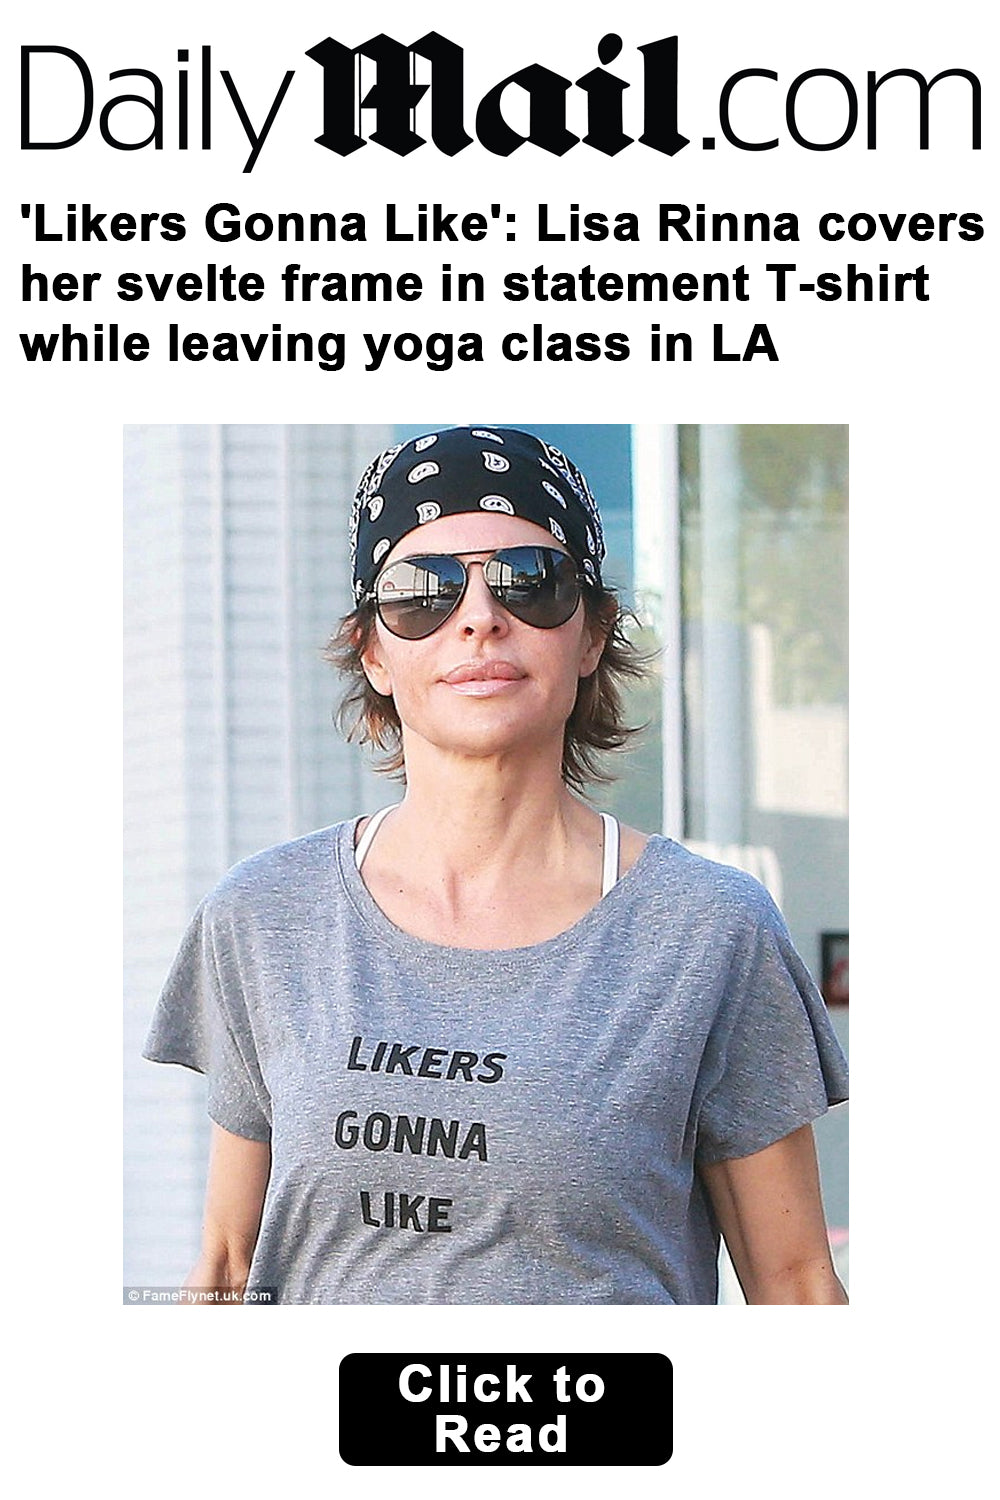 SuperLoveTees in DailyMail.com with Lissa Rinna